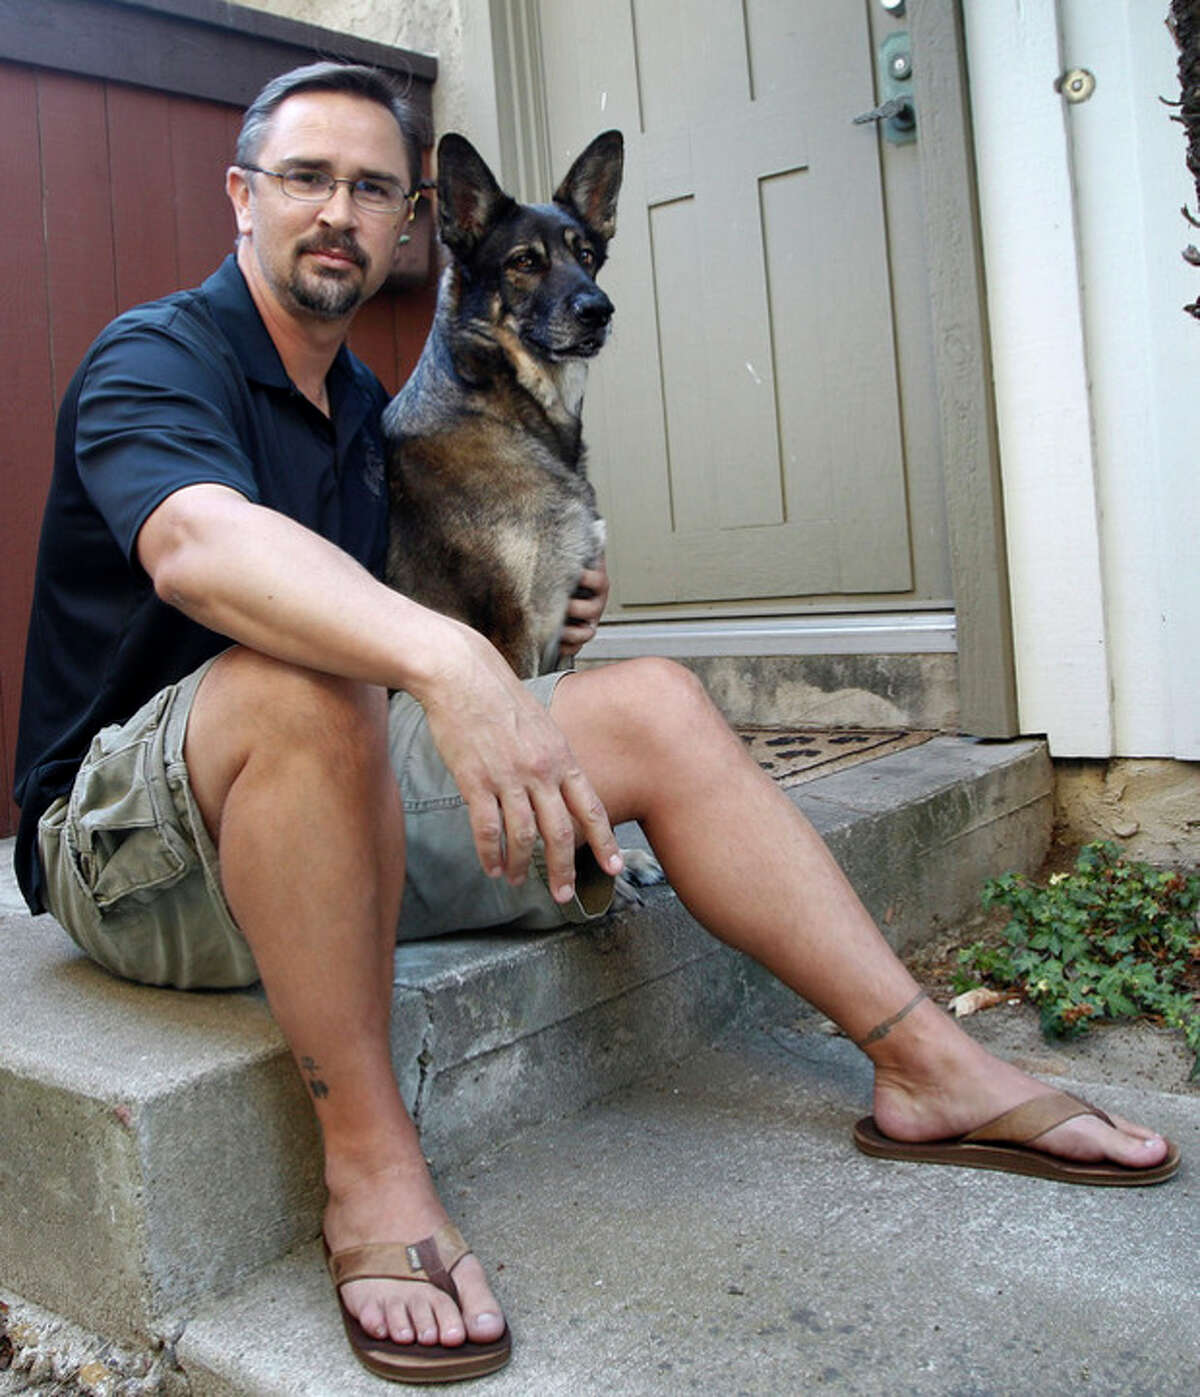 """In this Monday, July 23, 2012 photo, retired U.S. Marine Todd Kennedy poses on his front stoop with his pet, Malcolm, in San Diego. Kennedy served two tours in Iraq. He no longer follows the news there, focusing instead on studying history and anthropology at San Diego State University. ?""""In any war there are lessons learned. Any war has its skeletons. Any war has its debates, repercussions, its conspiracies. Regardless of whether it was right or wrong to go in to there, for me personally, it's not something I did a lot of dwelling on ... The nation called on me, so it was something I had to do."""" (AP Photo/Lenny Ignelzi)"""